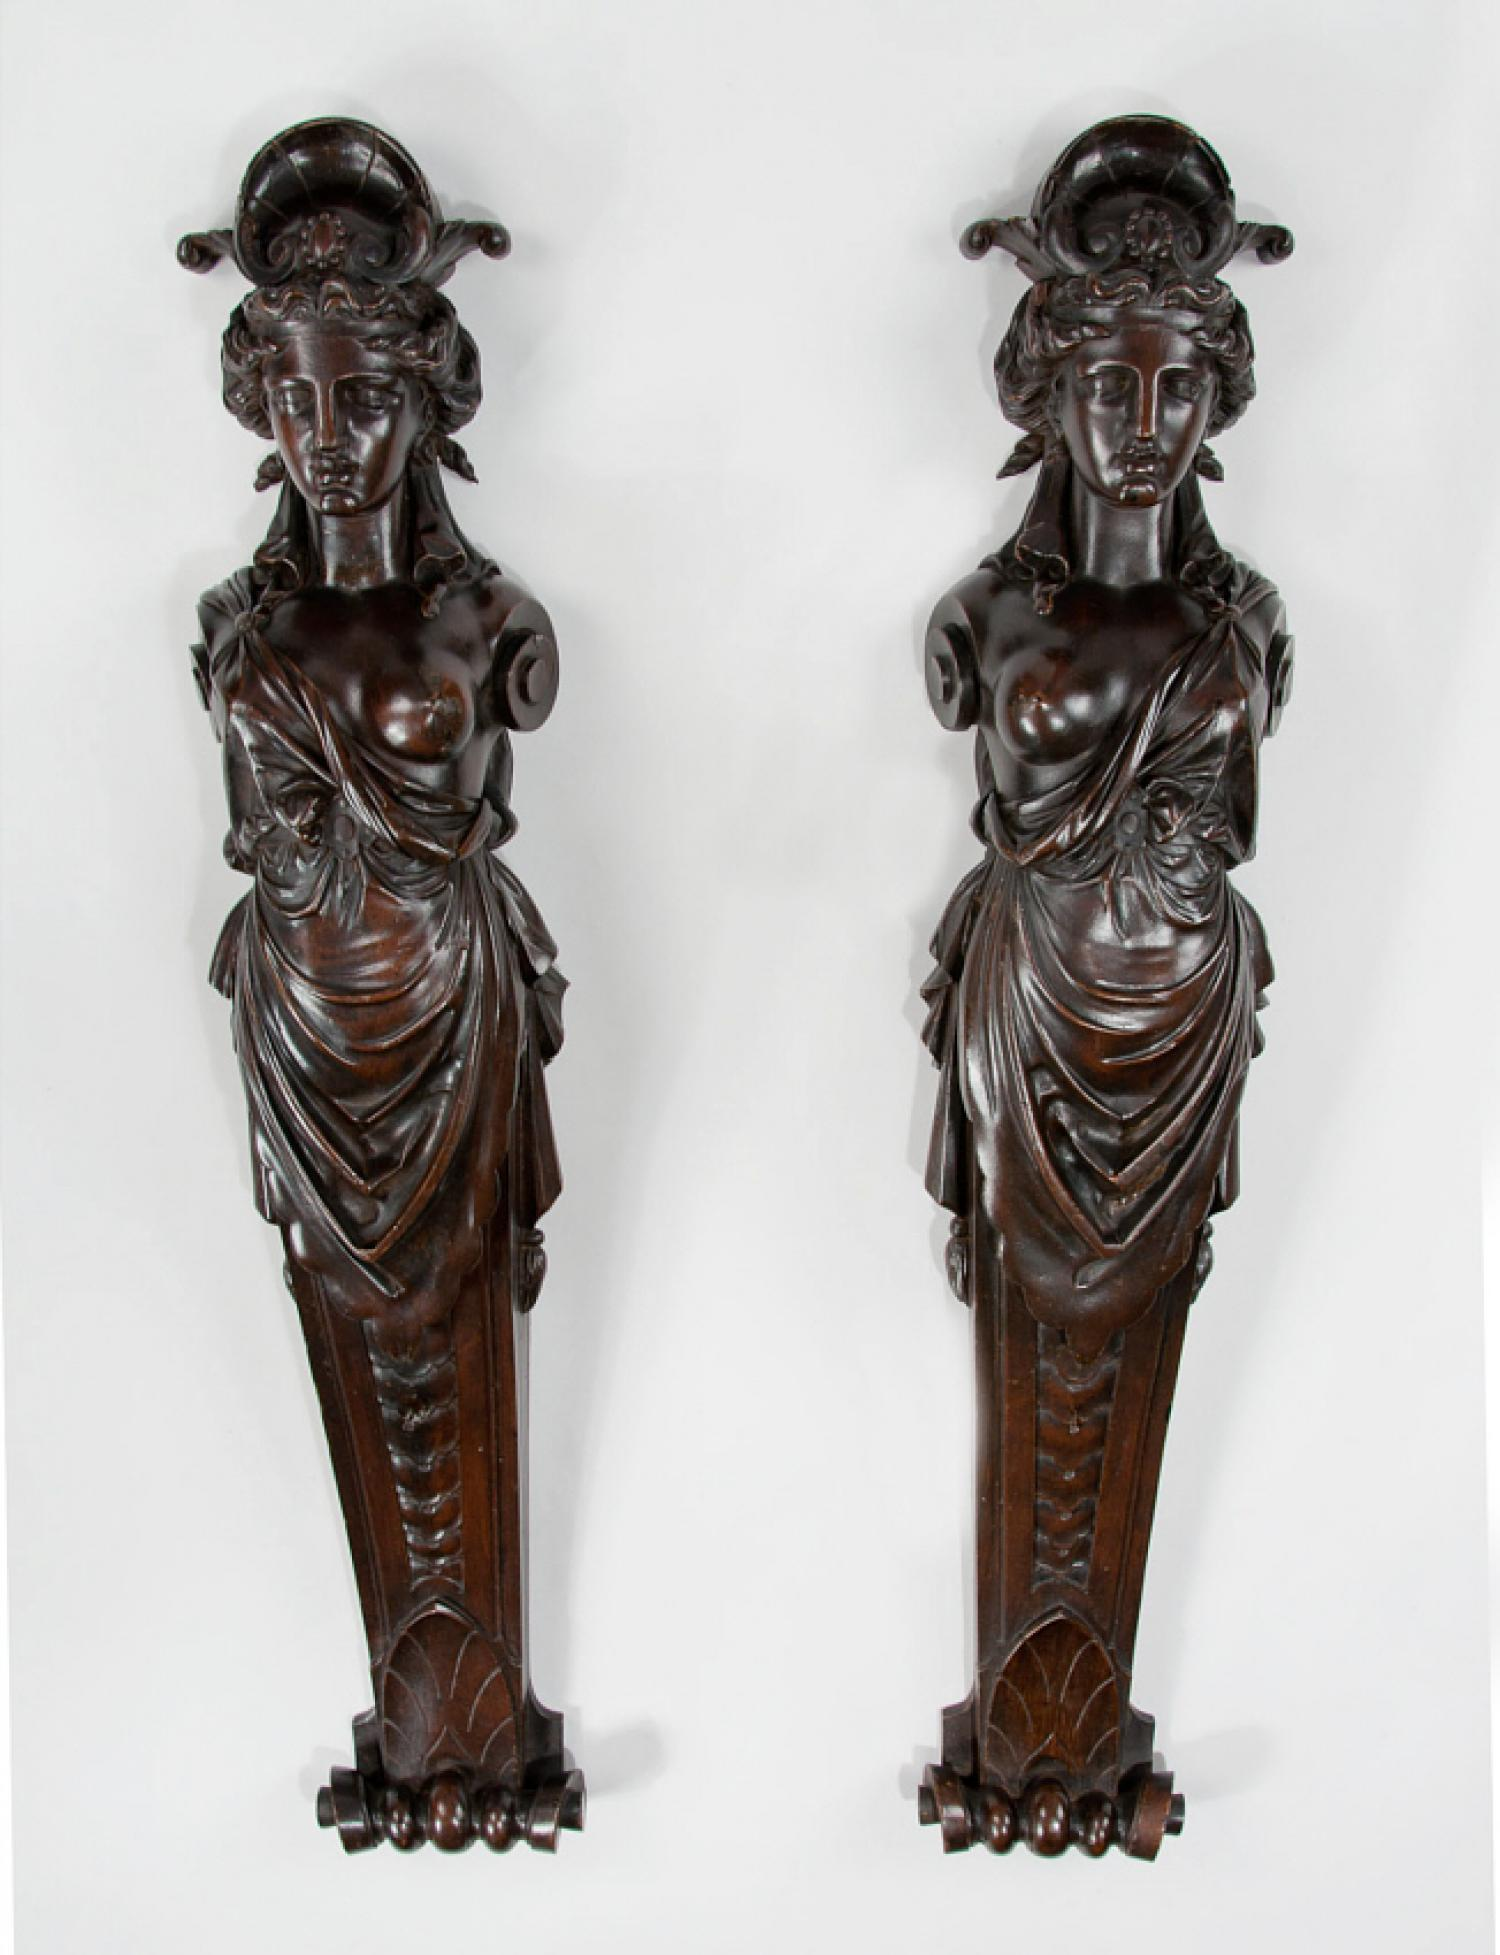 Finely carved pair of 19th century female architectural caryatids